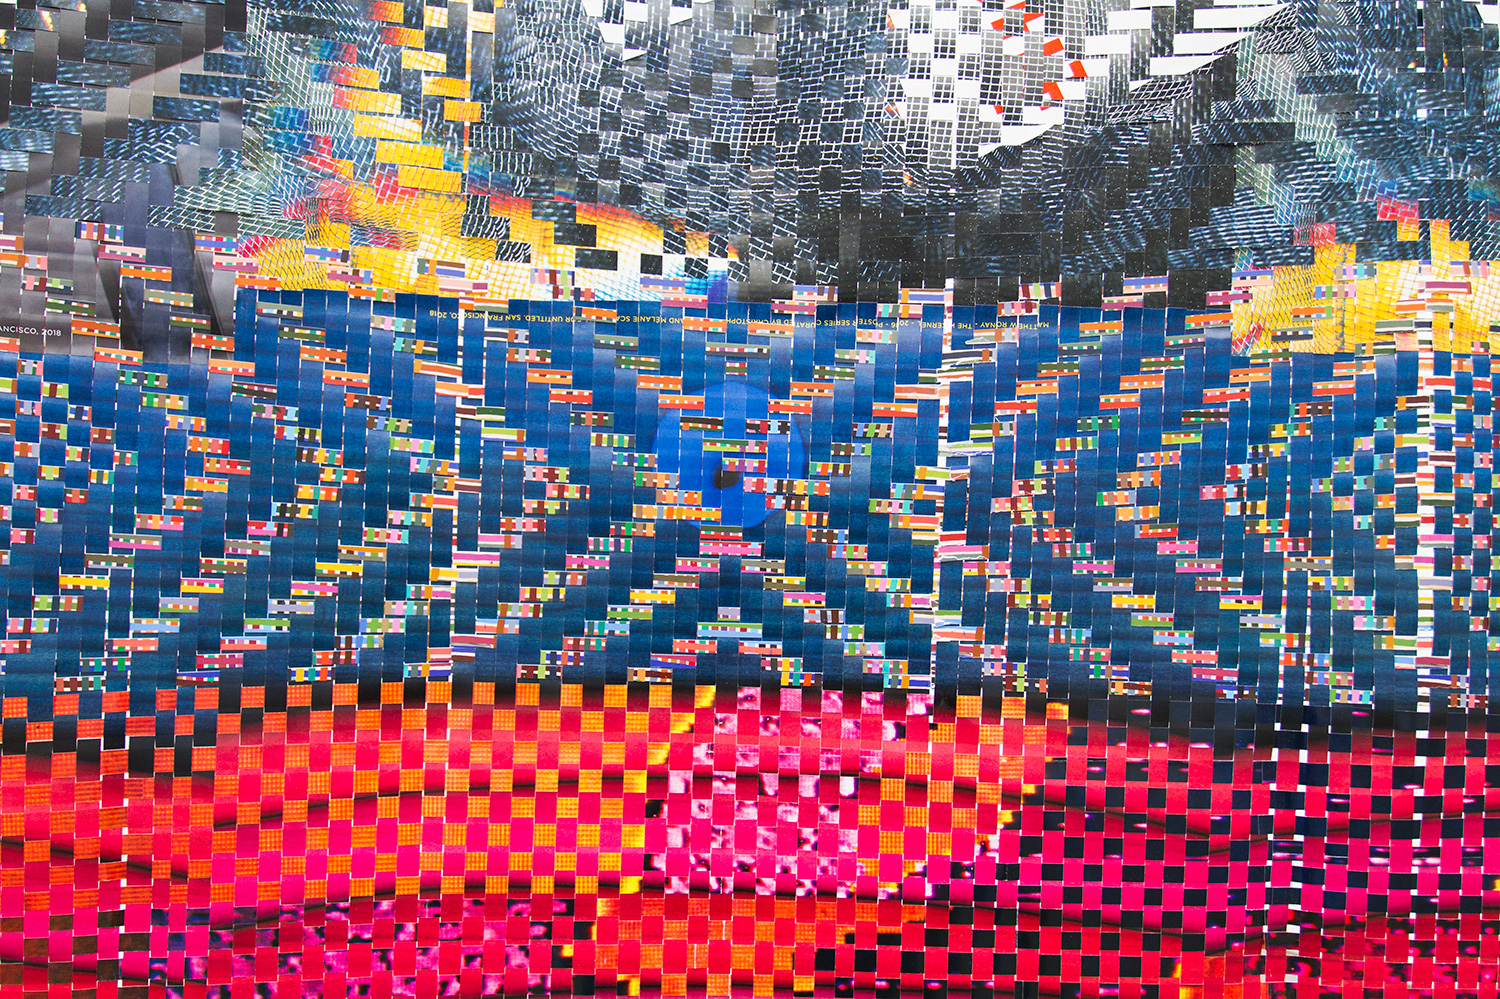 Detail of Last Weaving